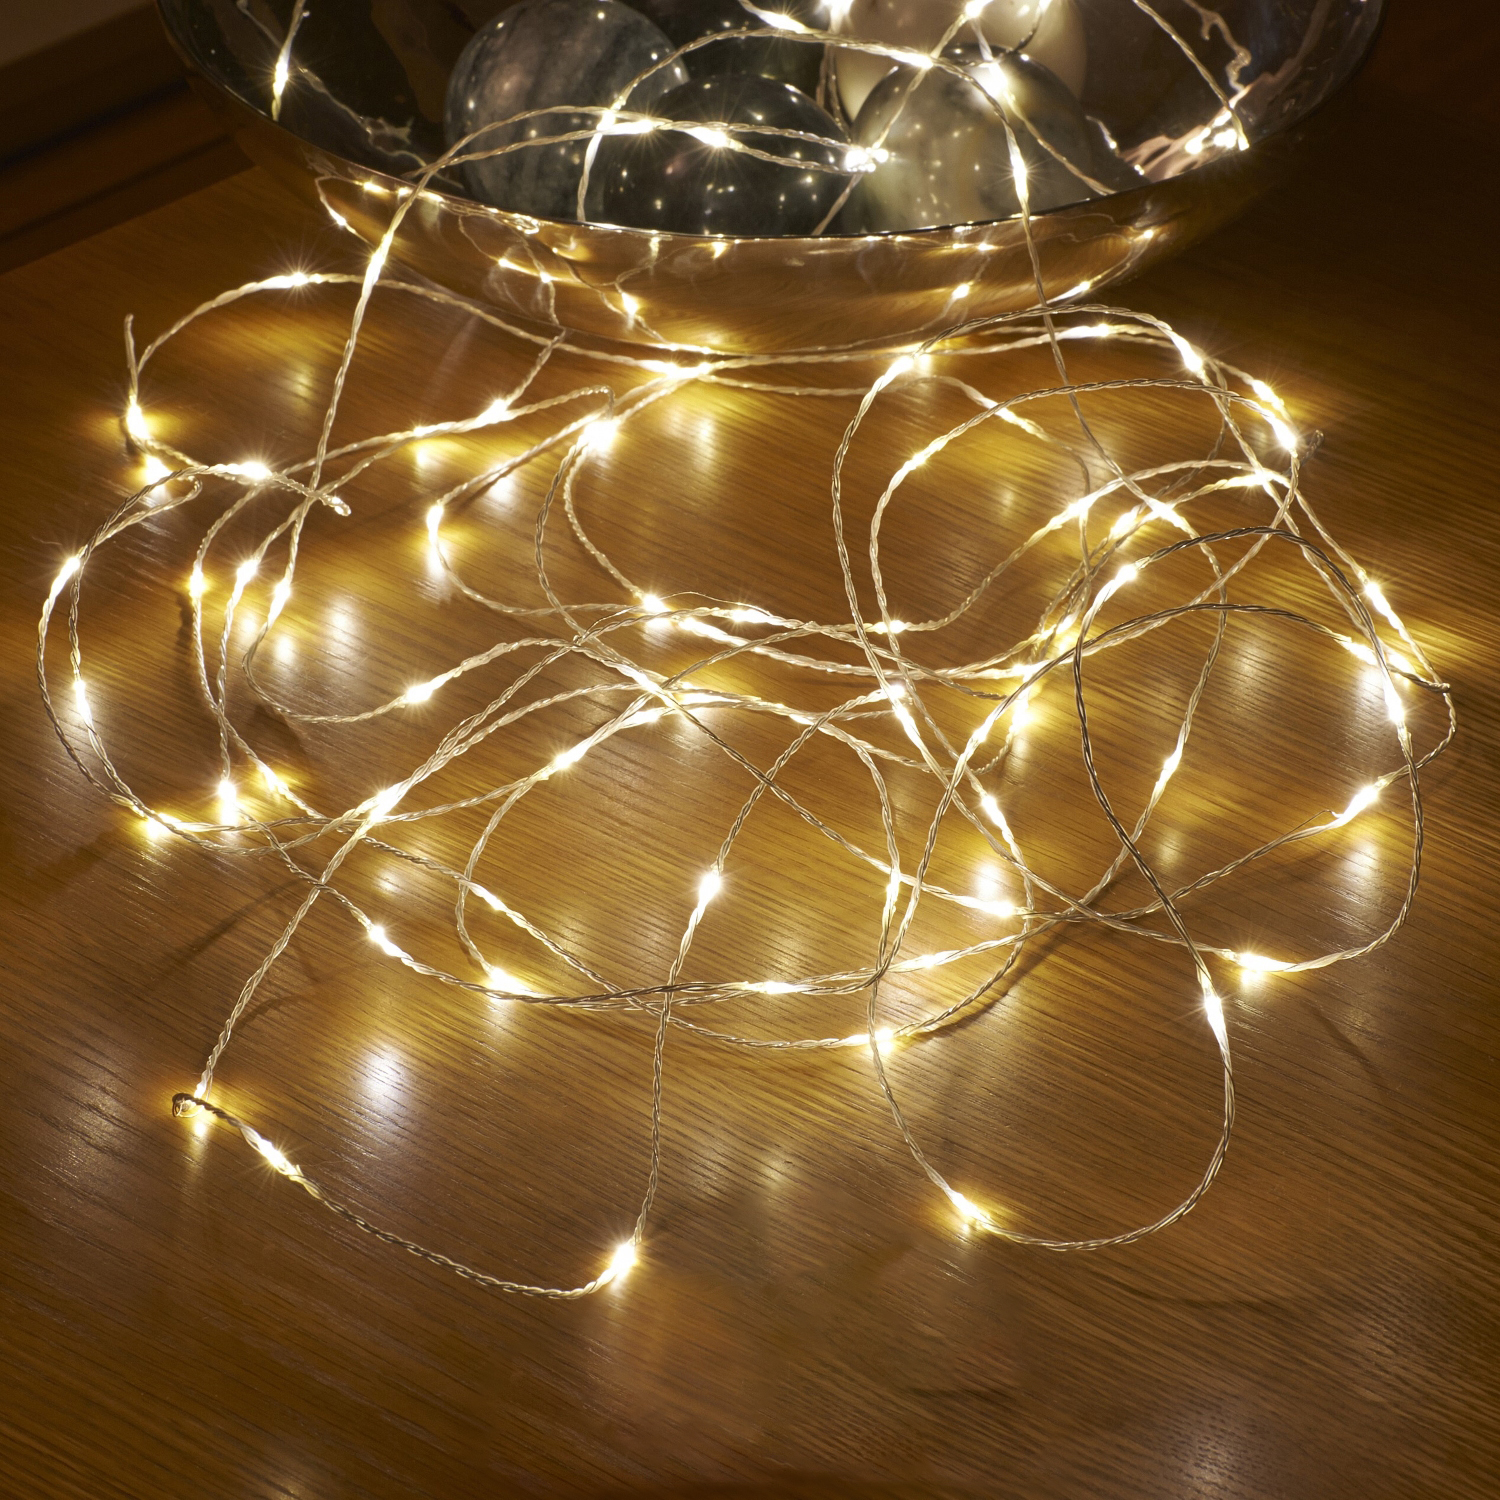 Micro LED String Lights - Battery Operated - Remote Controlled - Outdoor - 5M - Auraglow LED ...